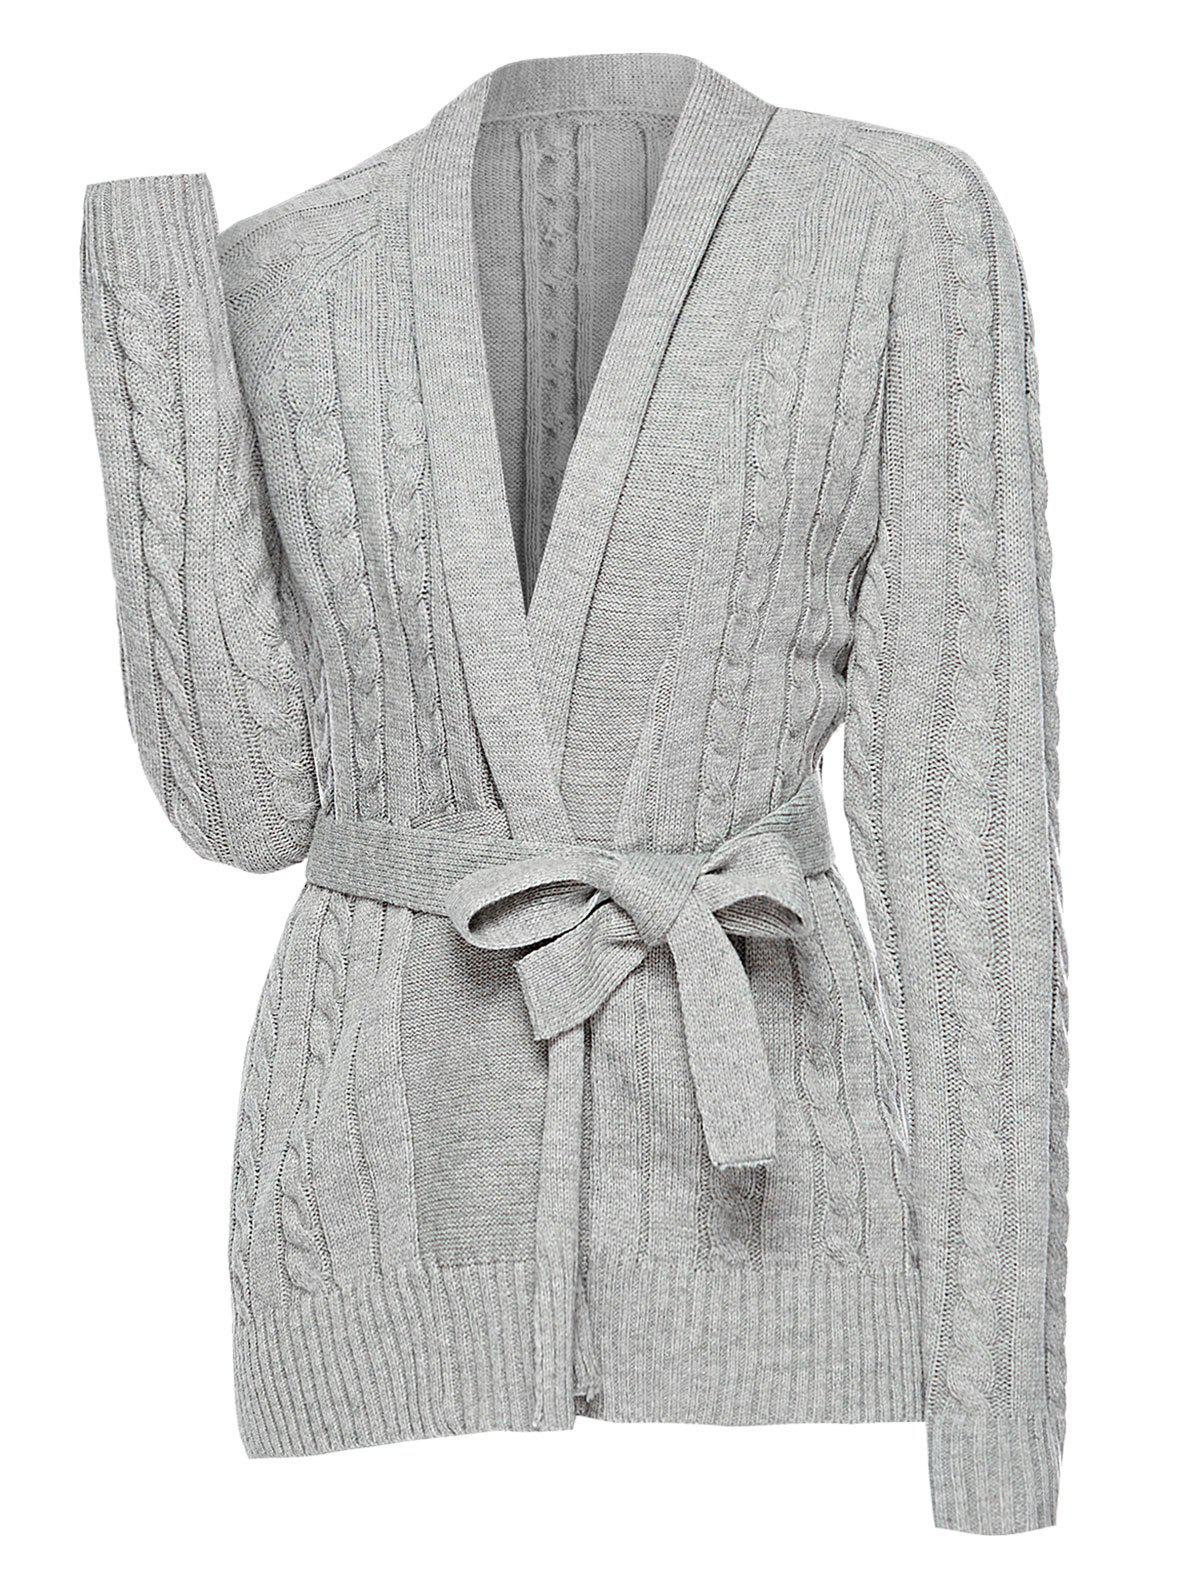 Plus Size Belted Cable Knit Cardigan - GRAY L